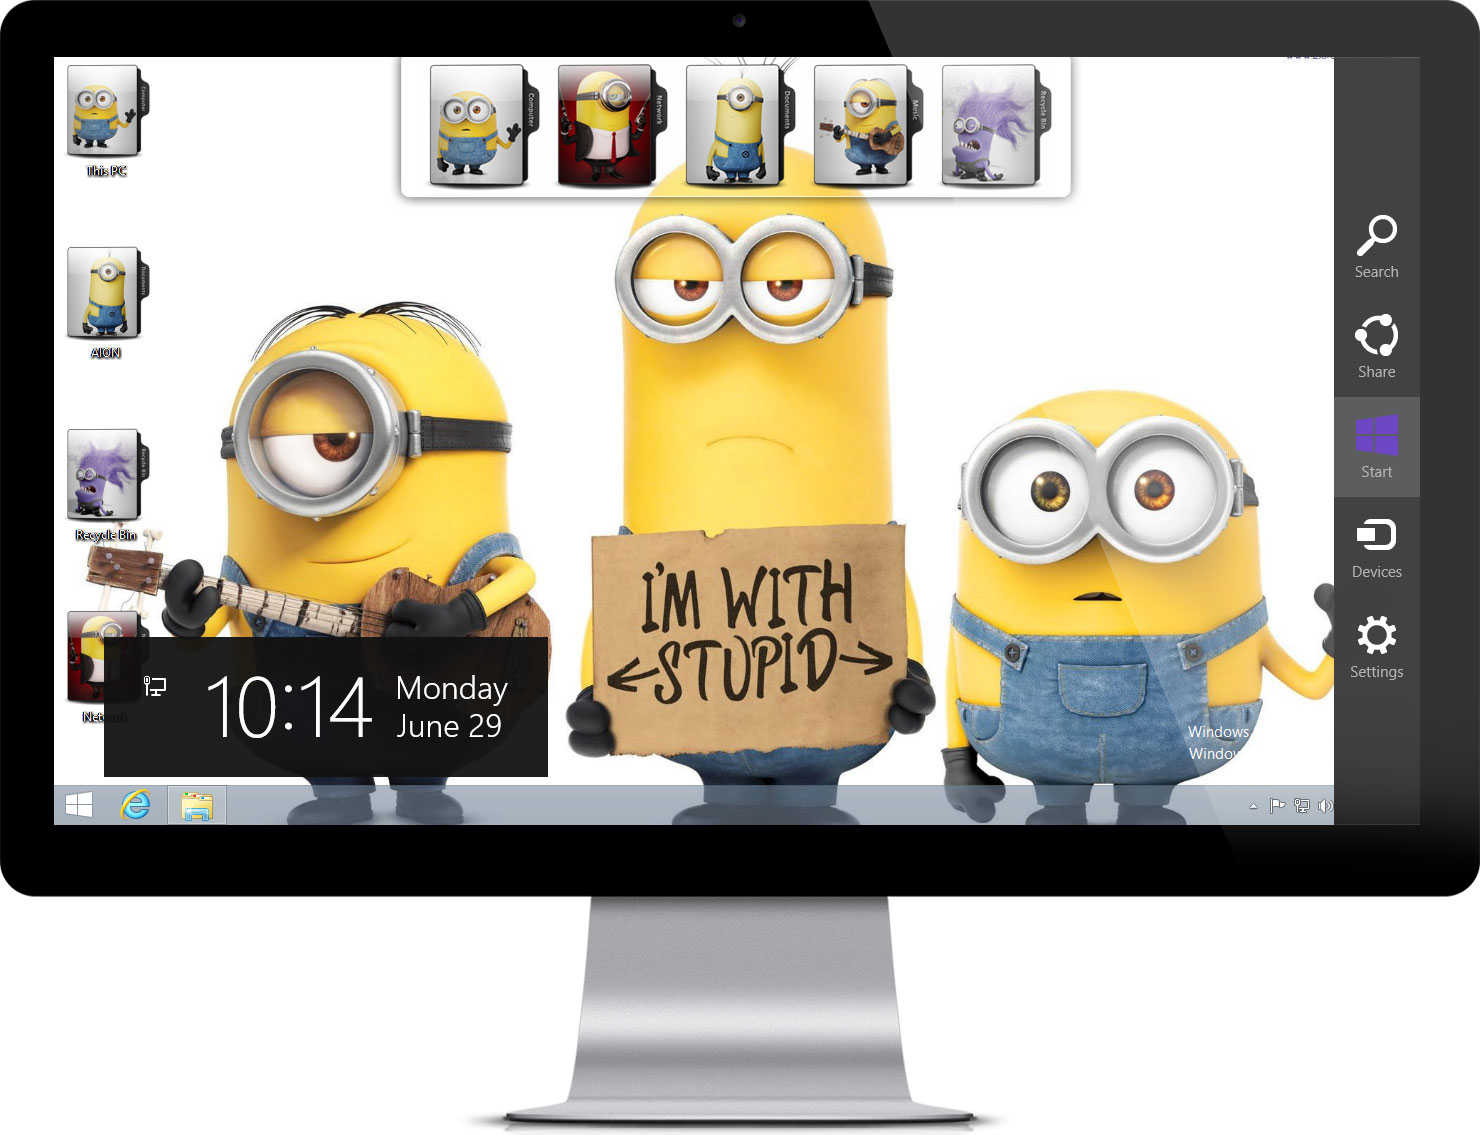 Google themes minions - Windows 7 Users Can Customize Their Logon Screen With Minion